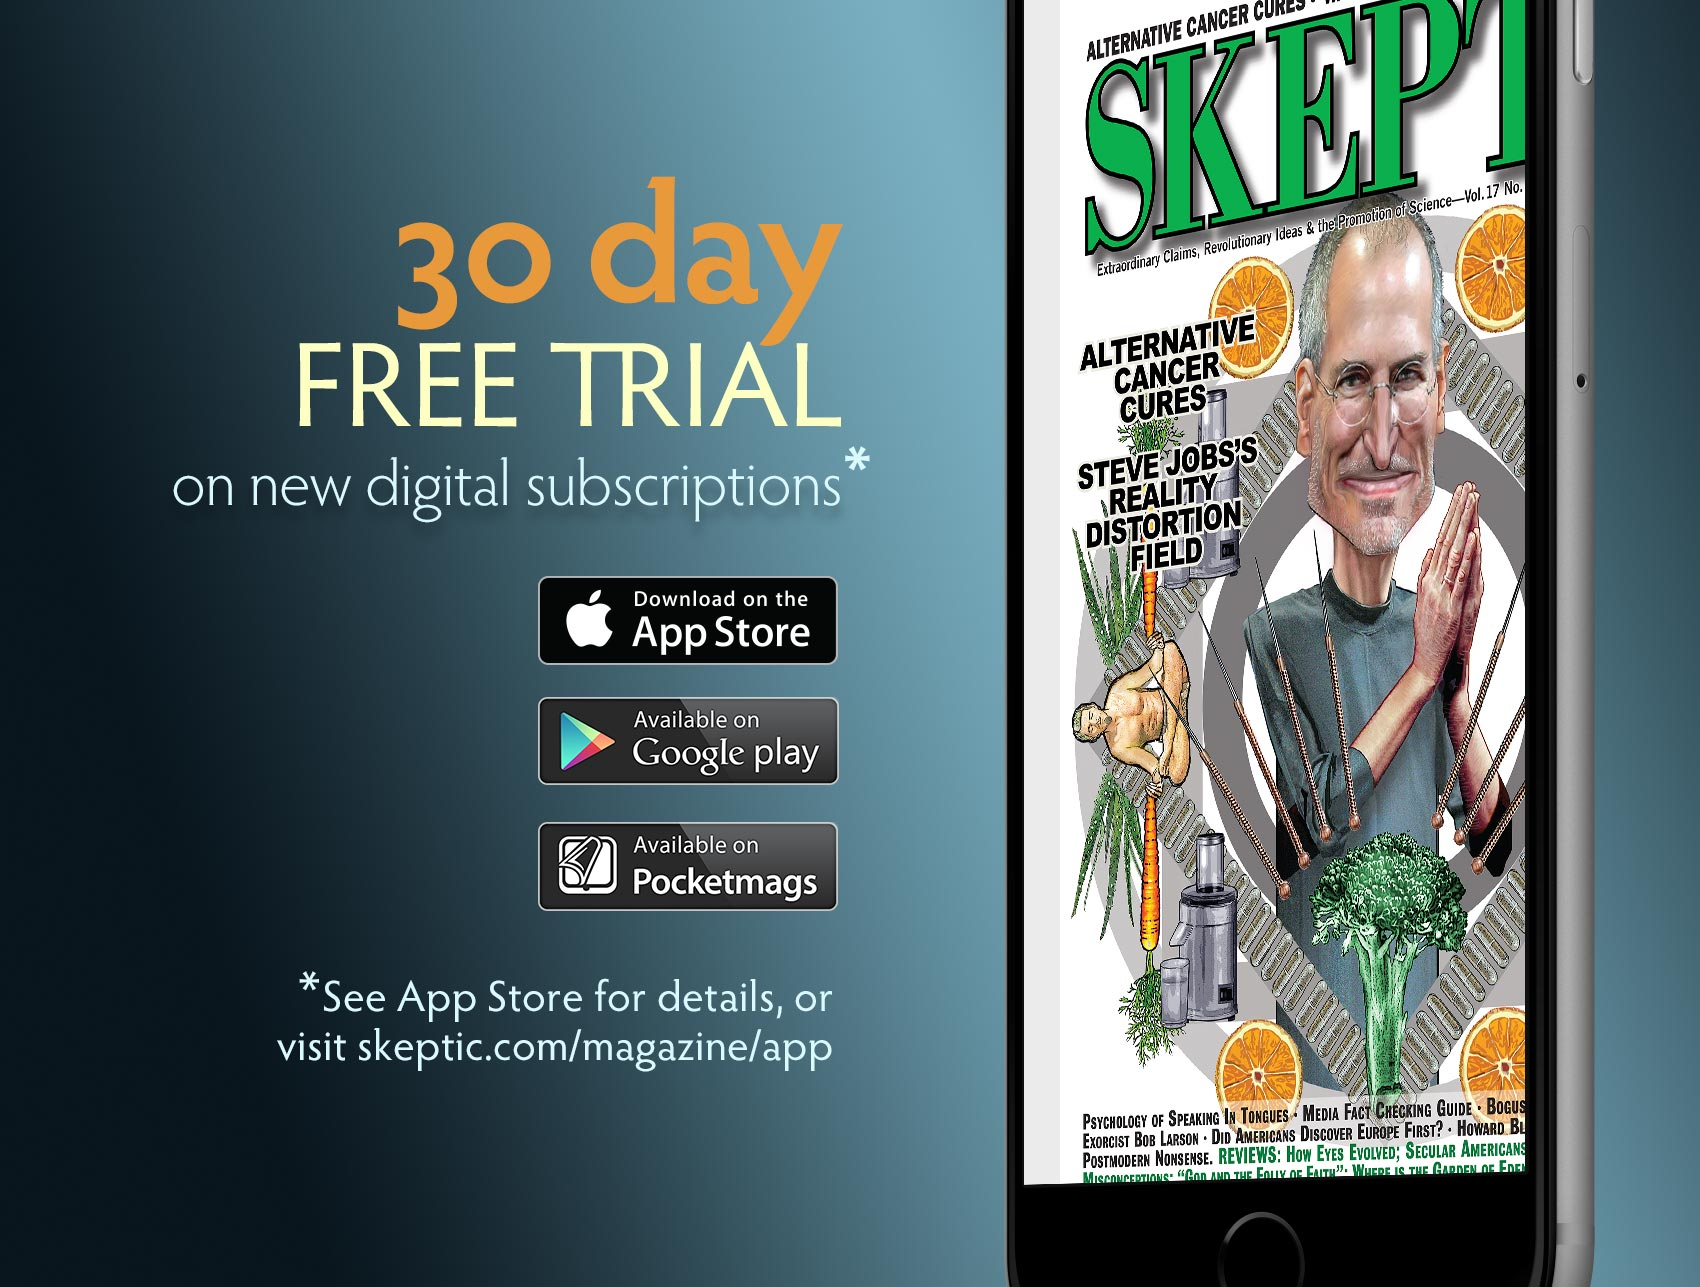 Get a 30-day free trial on a Skeptic digital subscription.